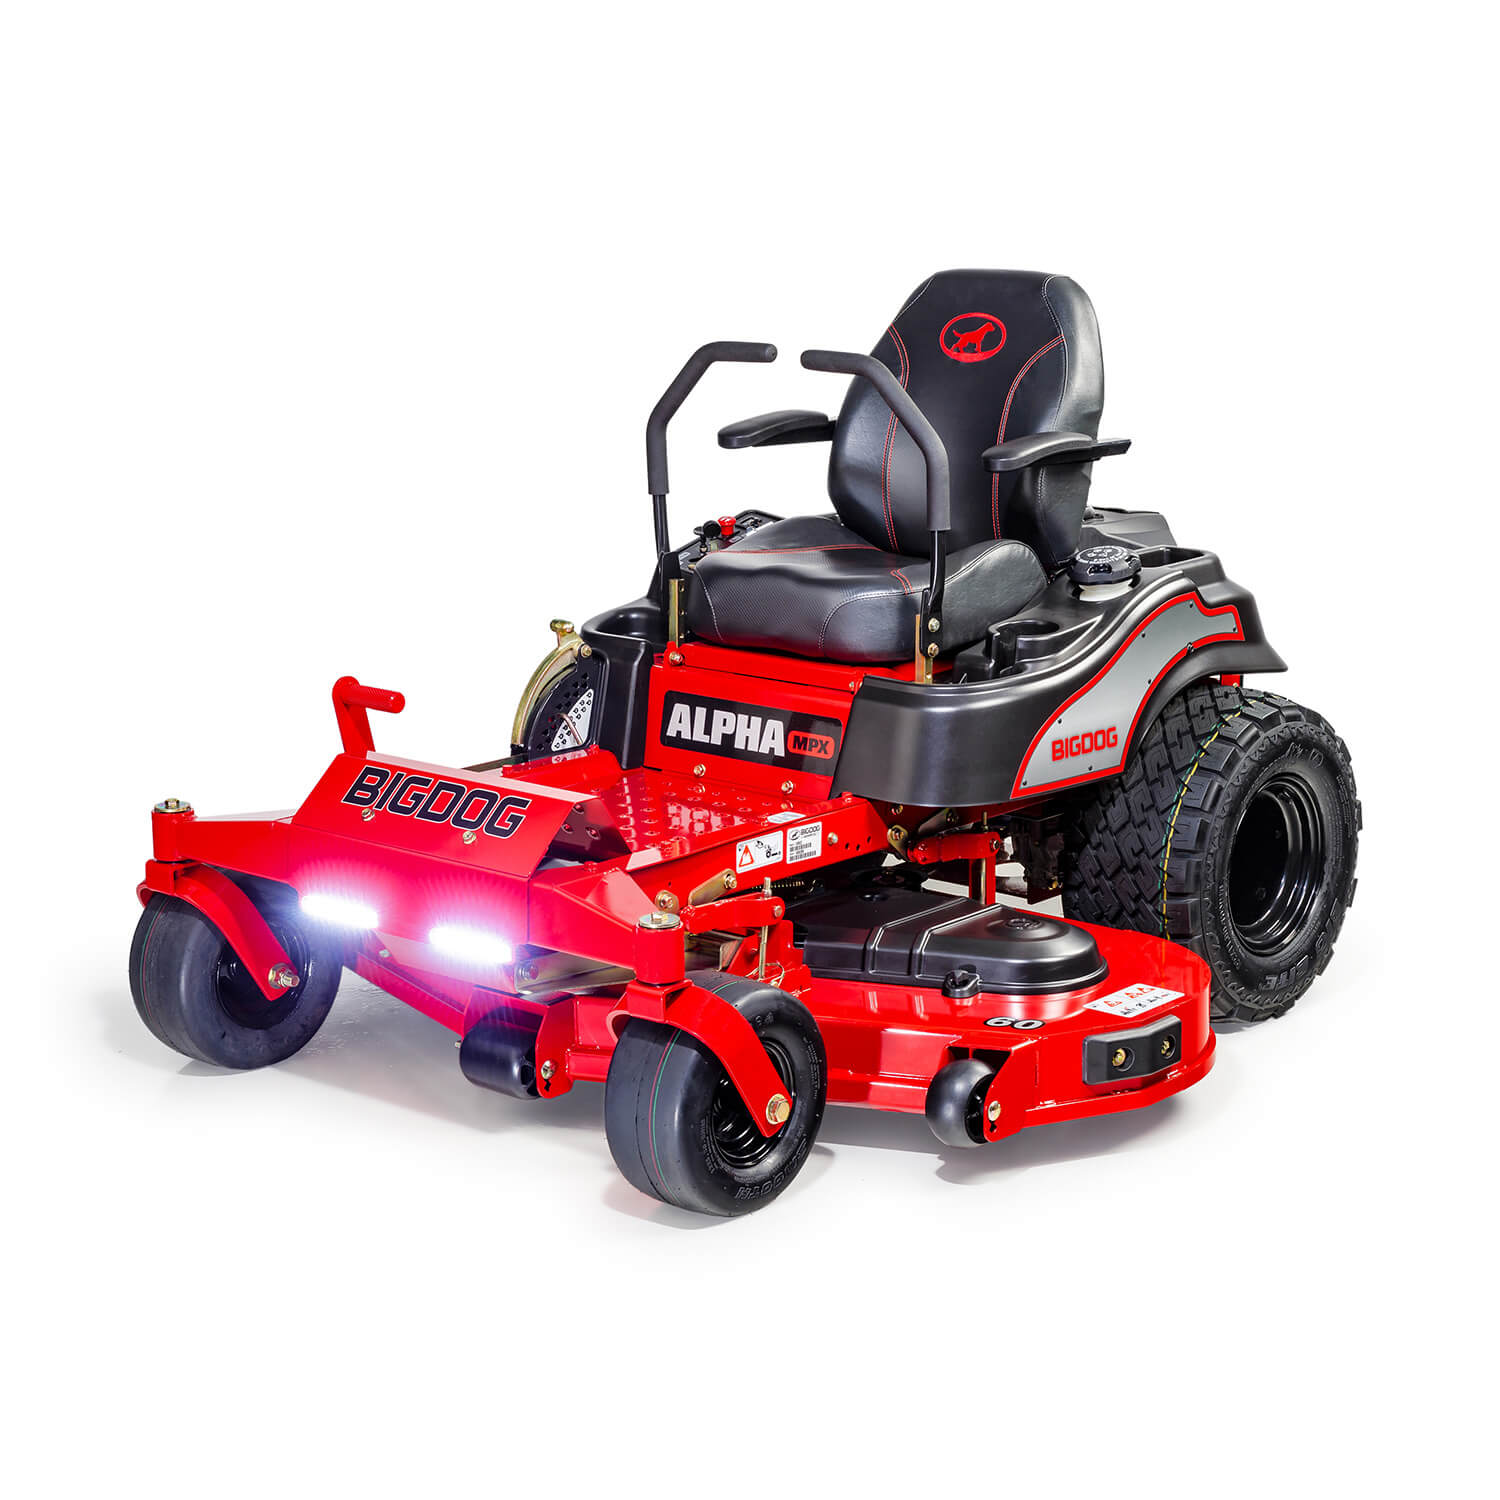 New, 2020, BigDog Mower Co, 60